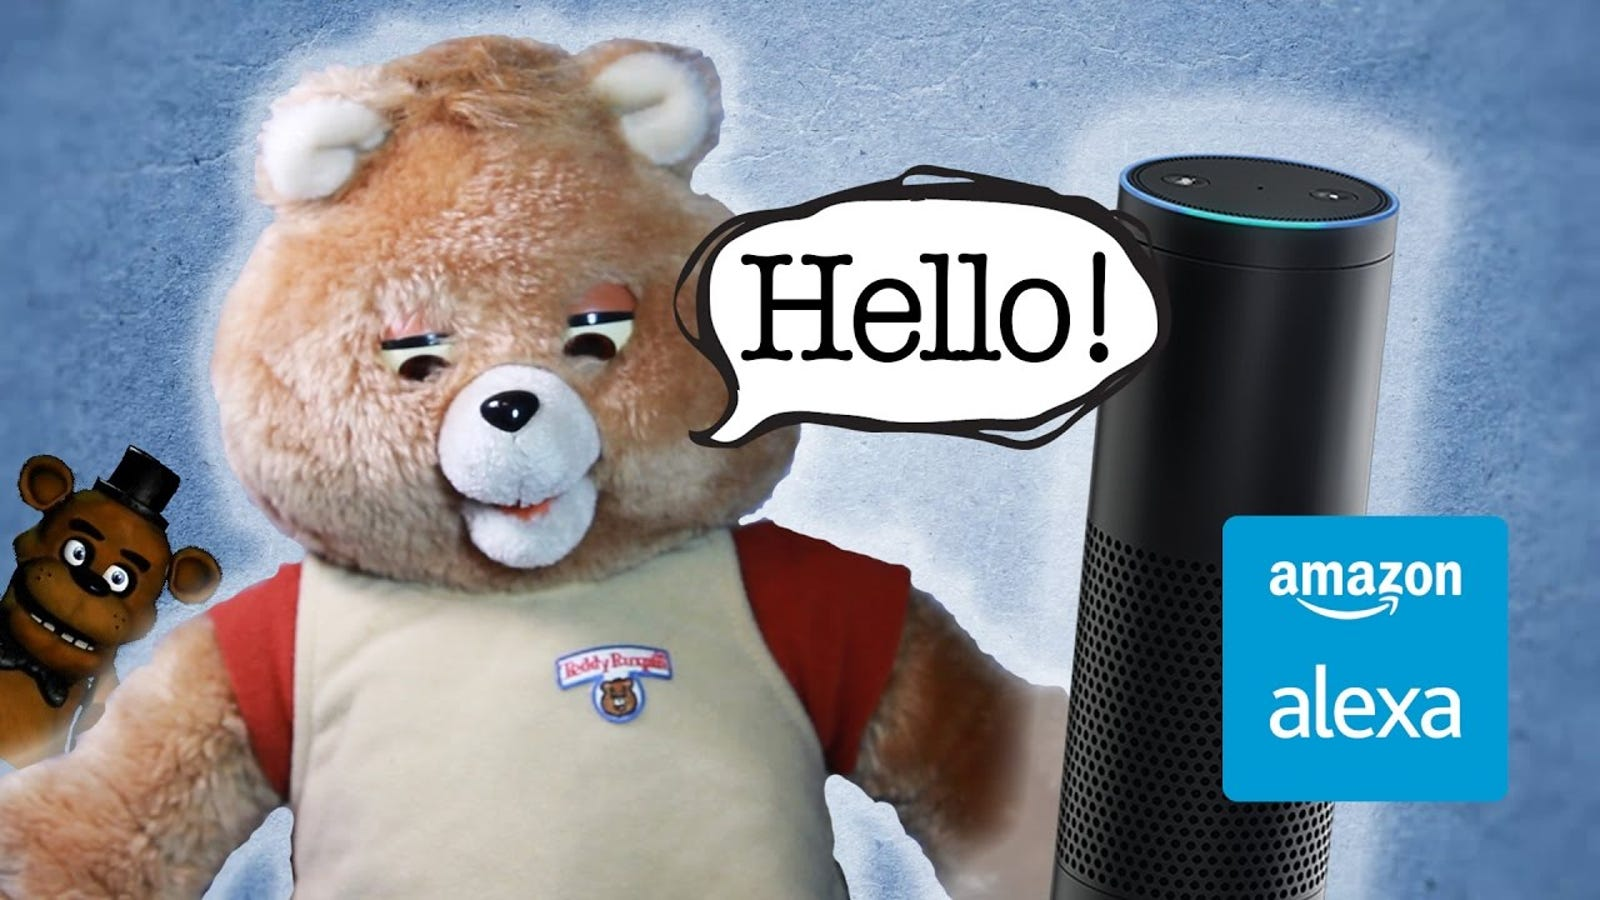 Delight or Horrify Your Friends By Cramming a DIY Alexa Into a Teddy Ruxpin